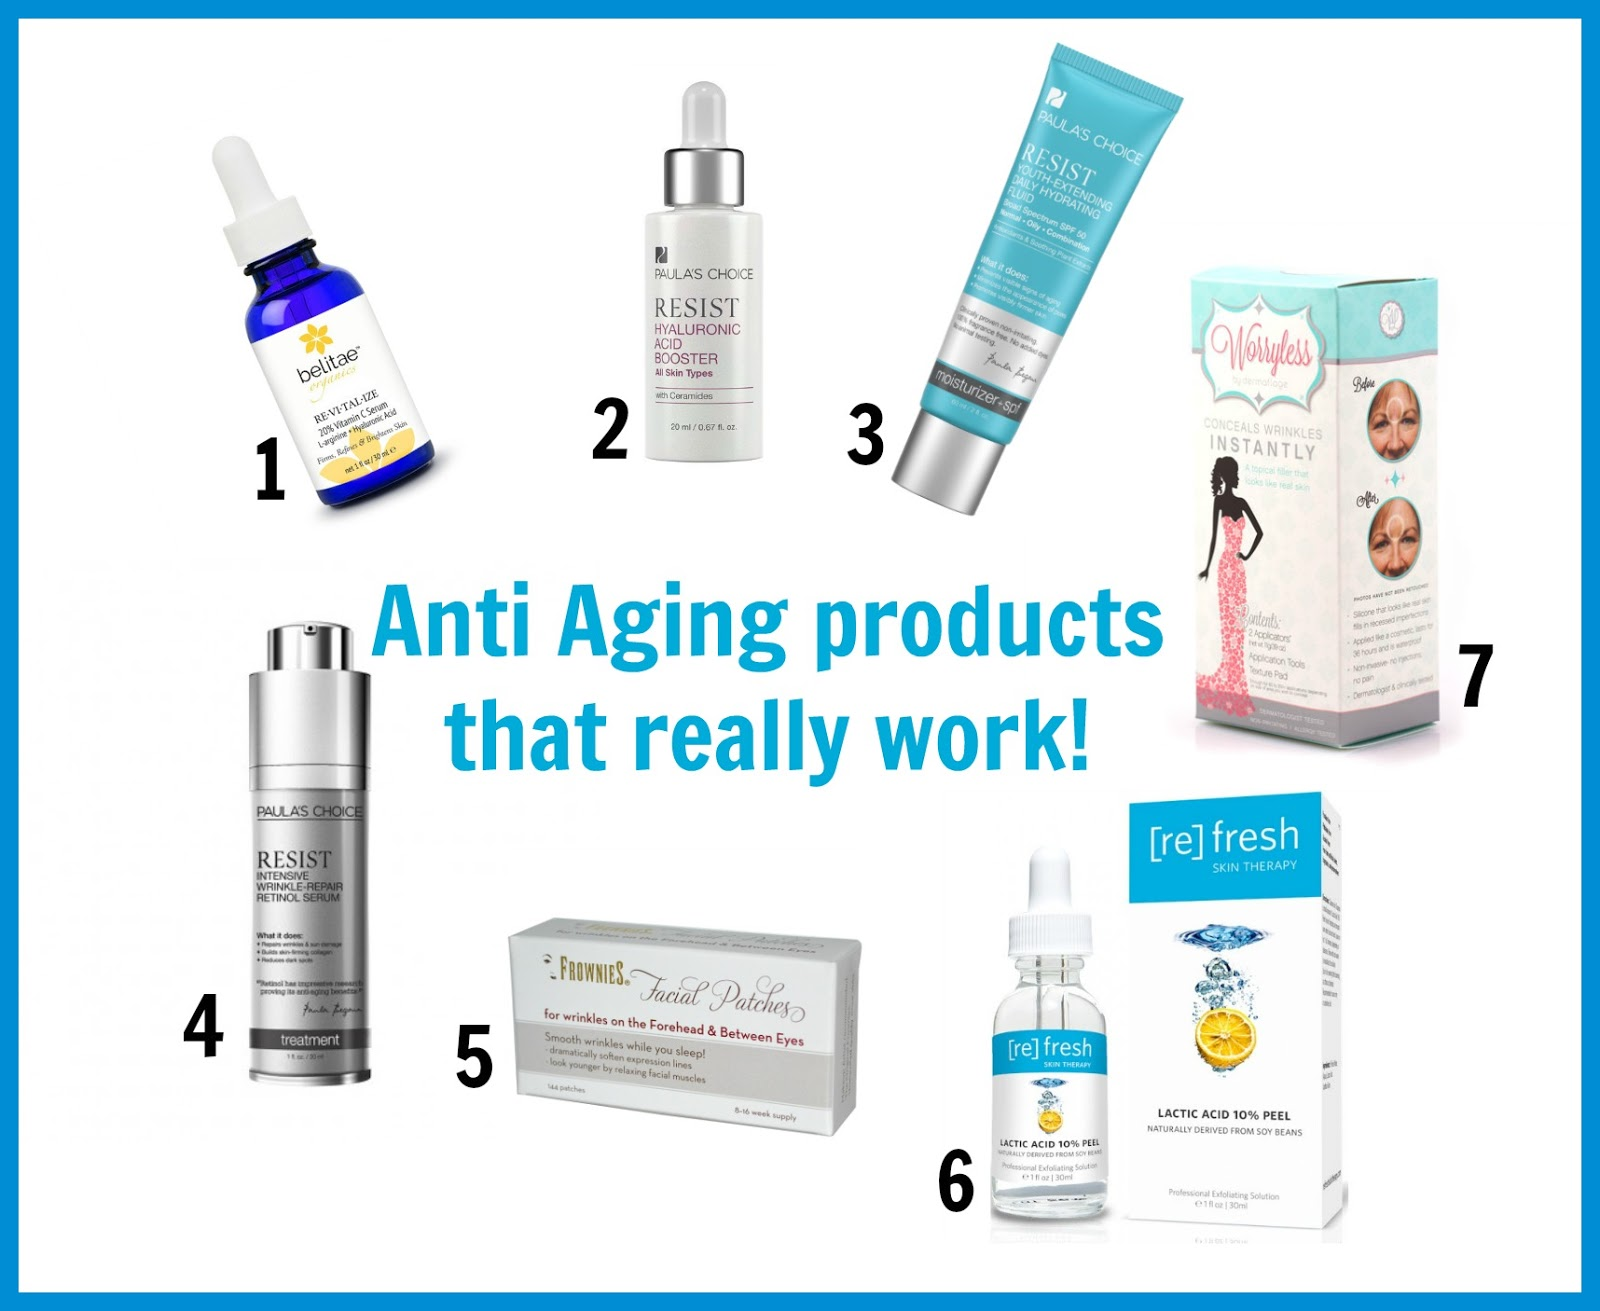 7 Anti Aging products that really work!